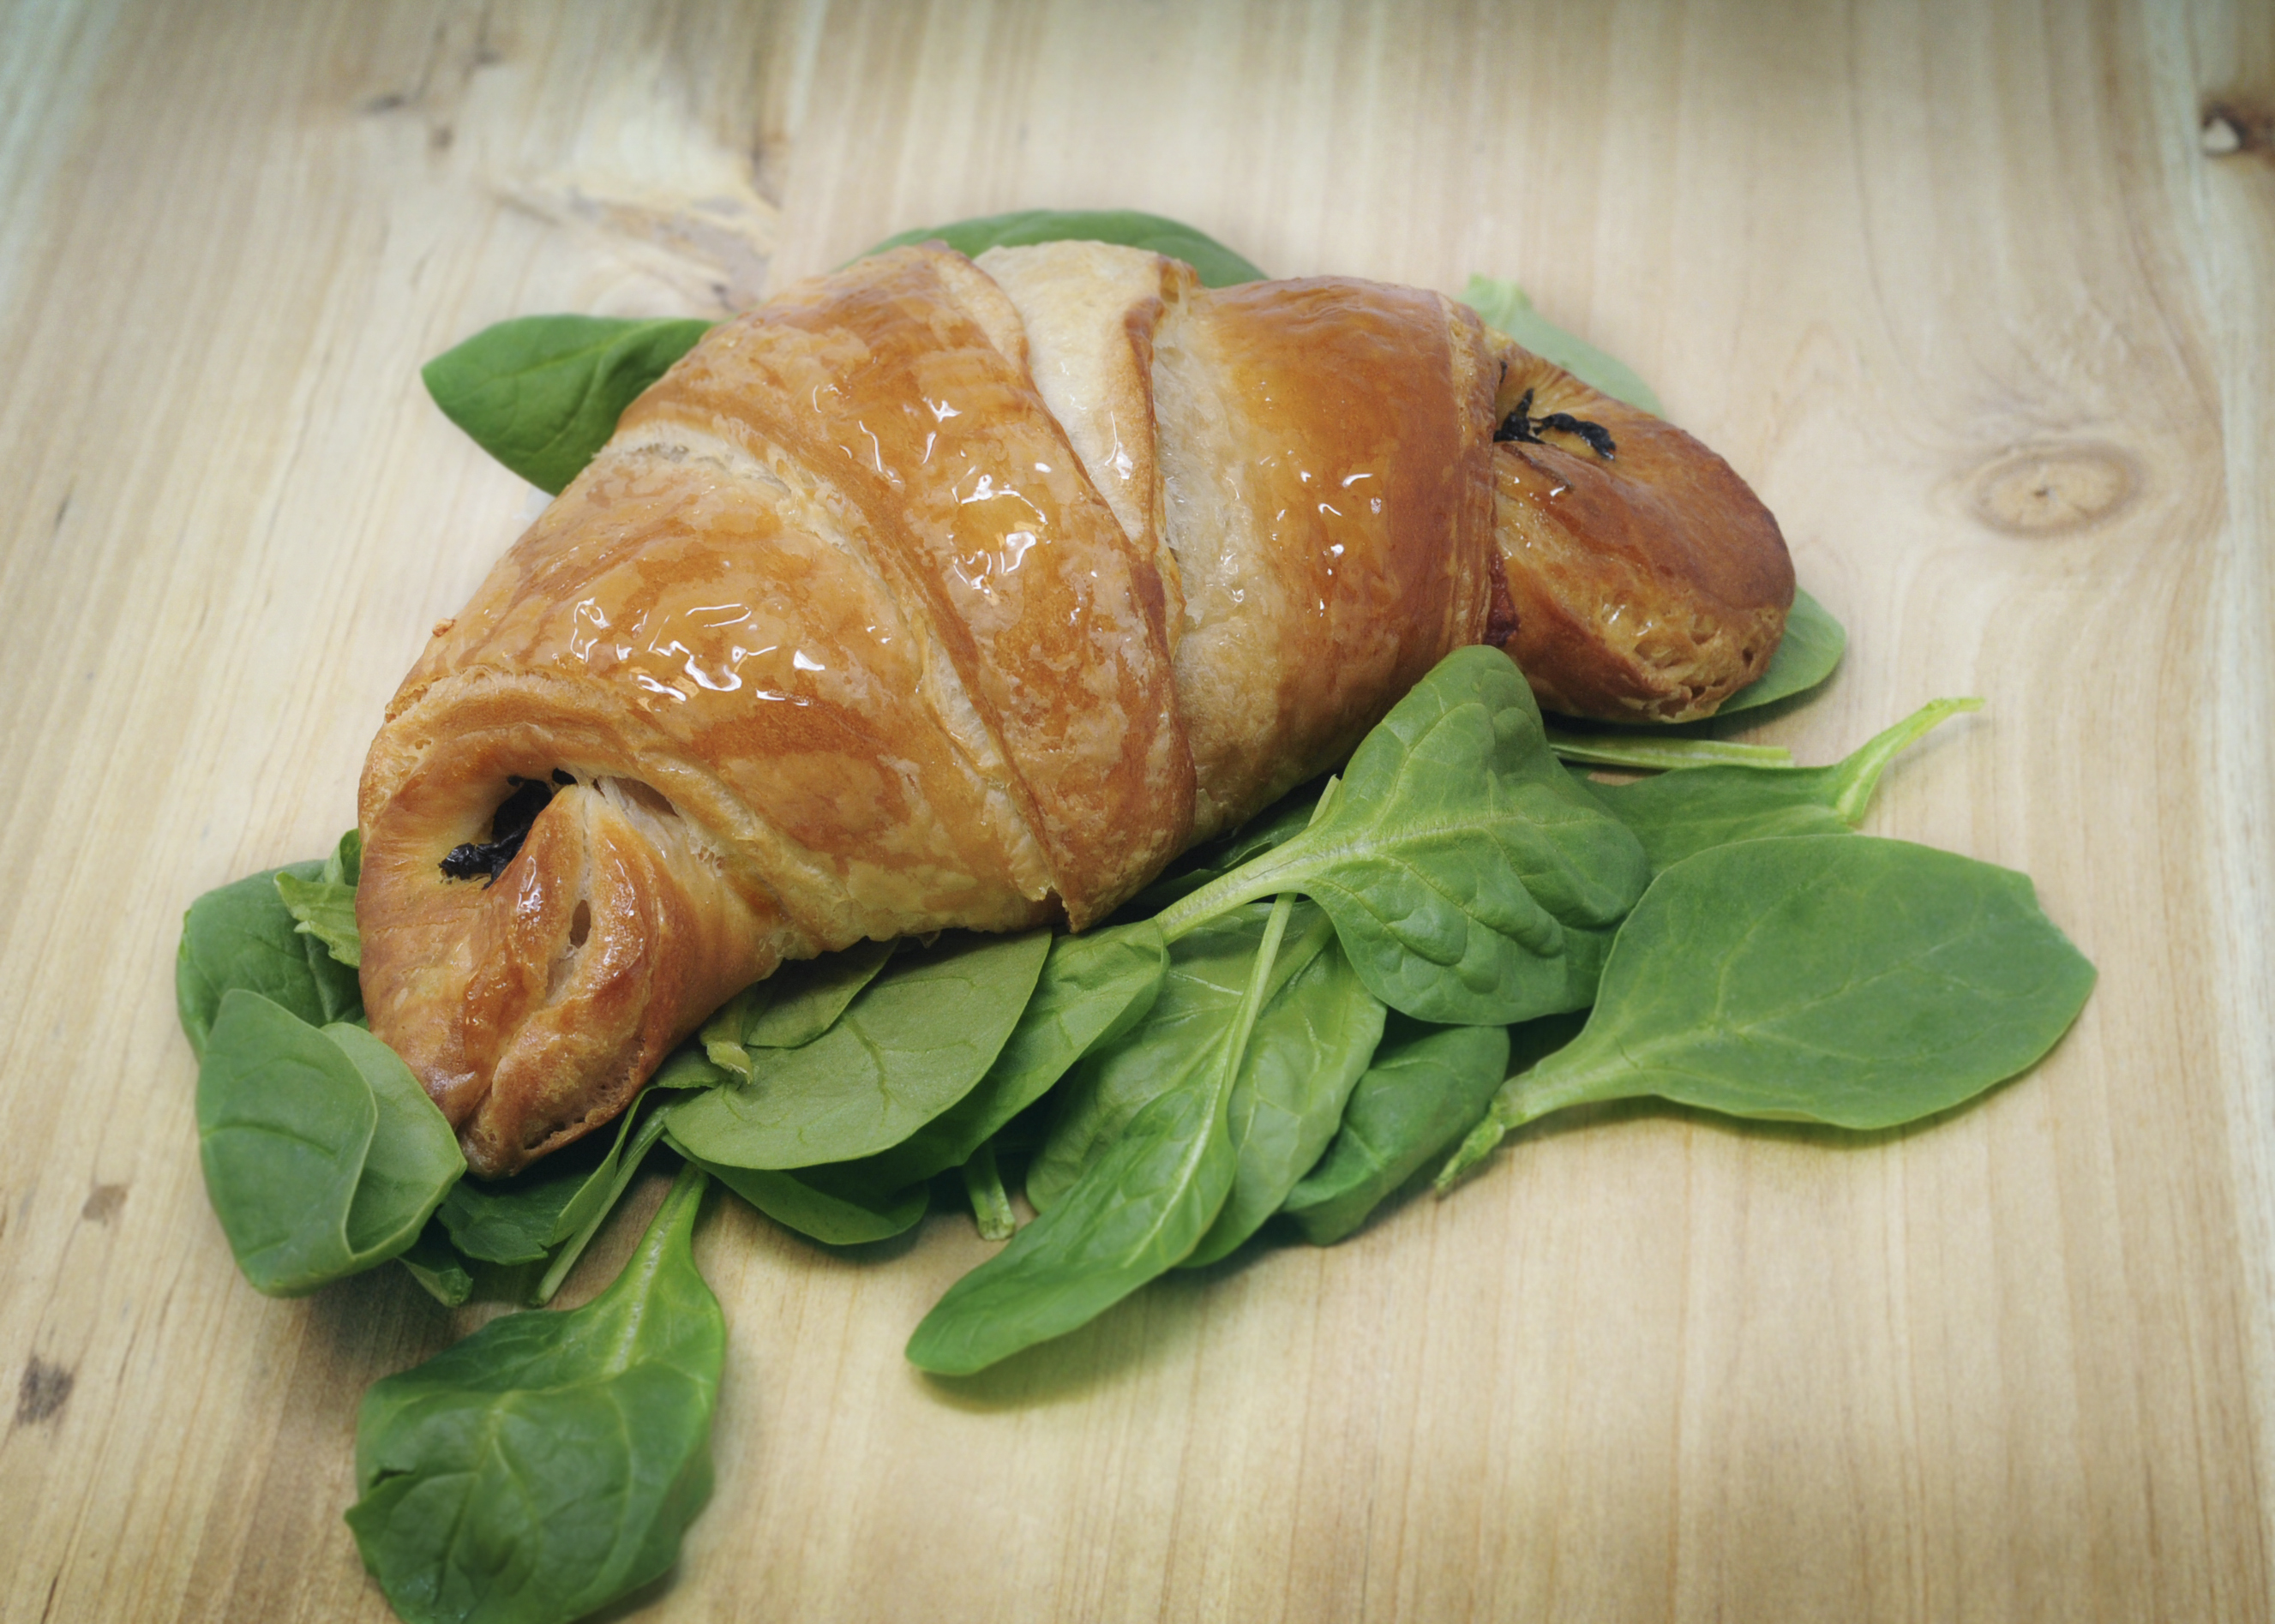 Spinach & Swiss Croissant